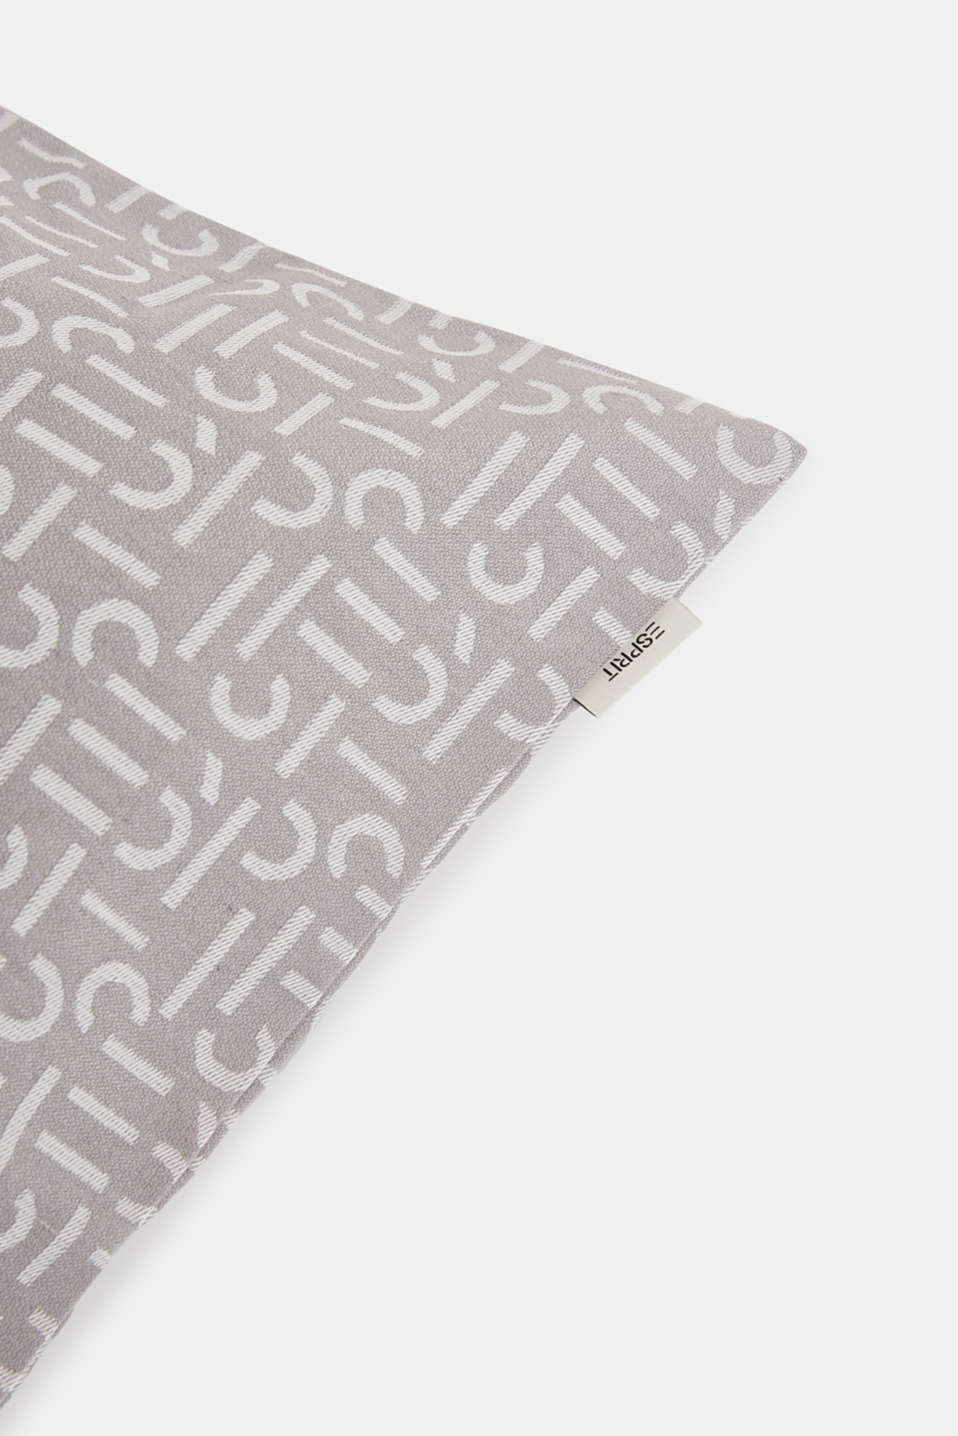 Cushion cover with a woven pattern, GREY, detail image number 1